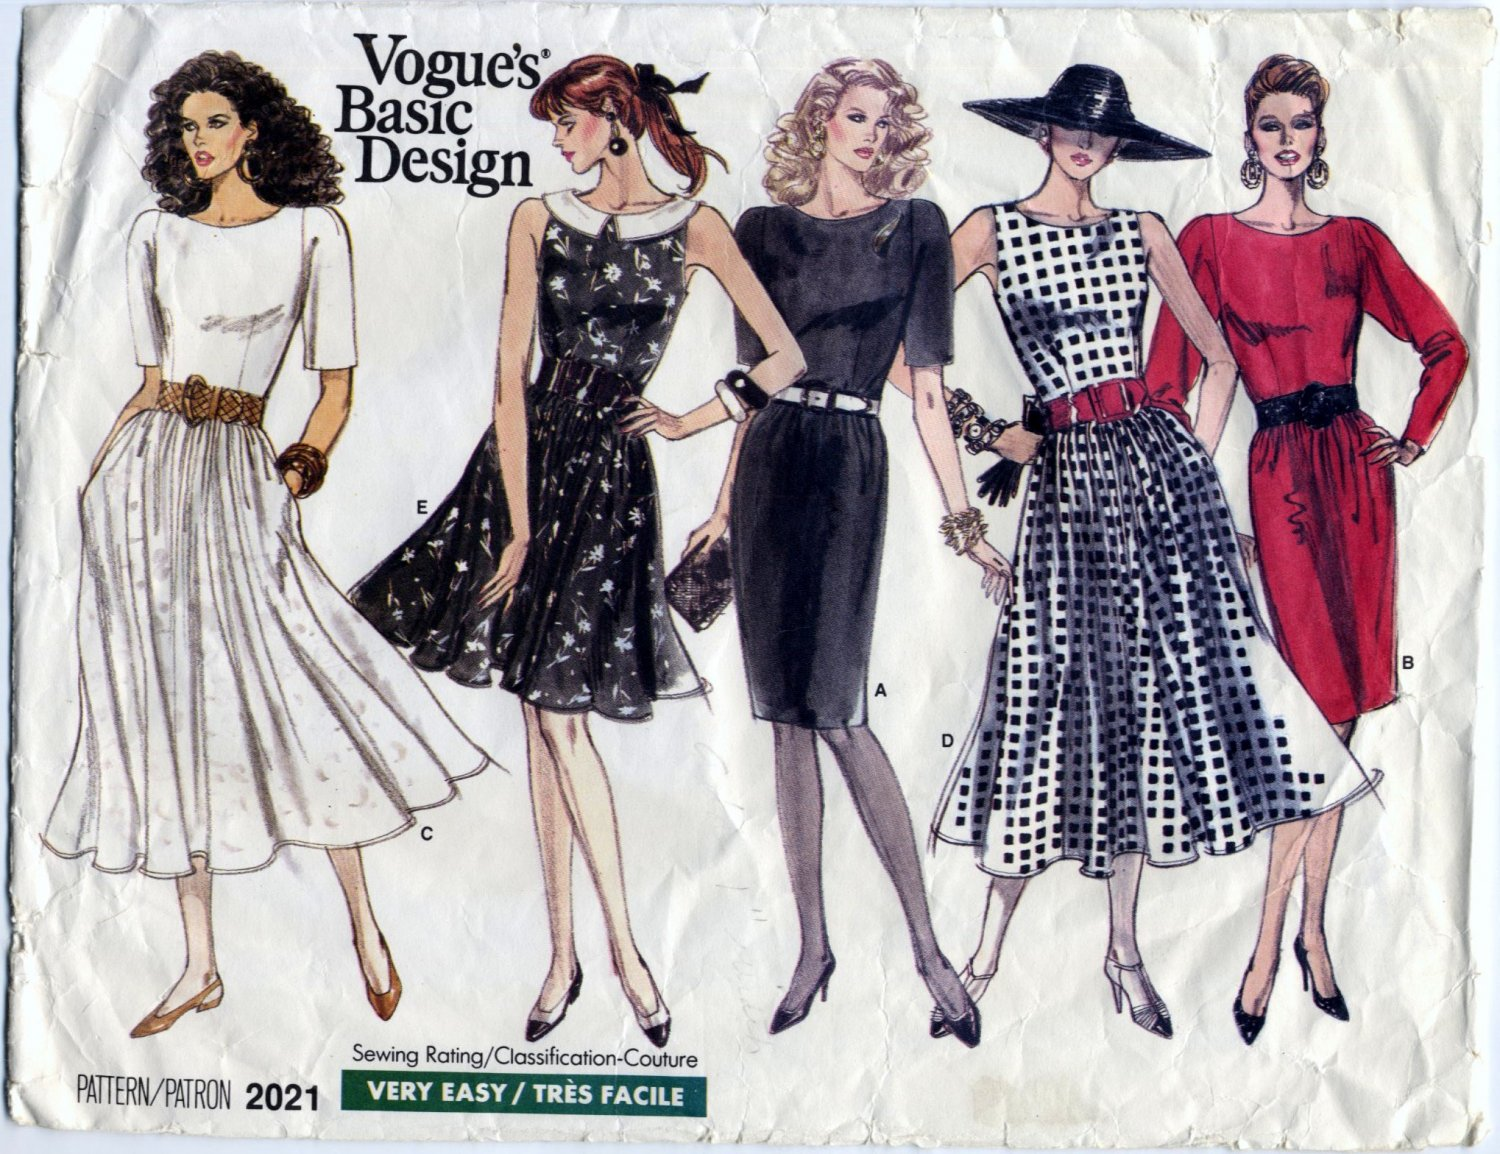 Vogue 2021 Basic Design Dresses - Very Easy CUT Sewing Pattern - Misses' 12 80s Chic 50s Vibe